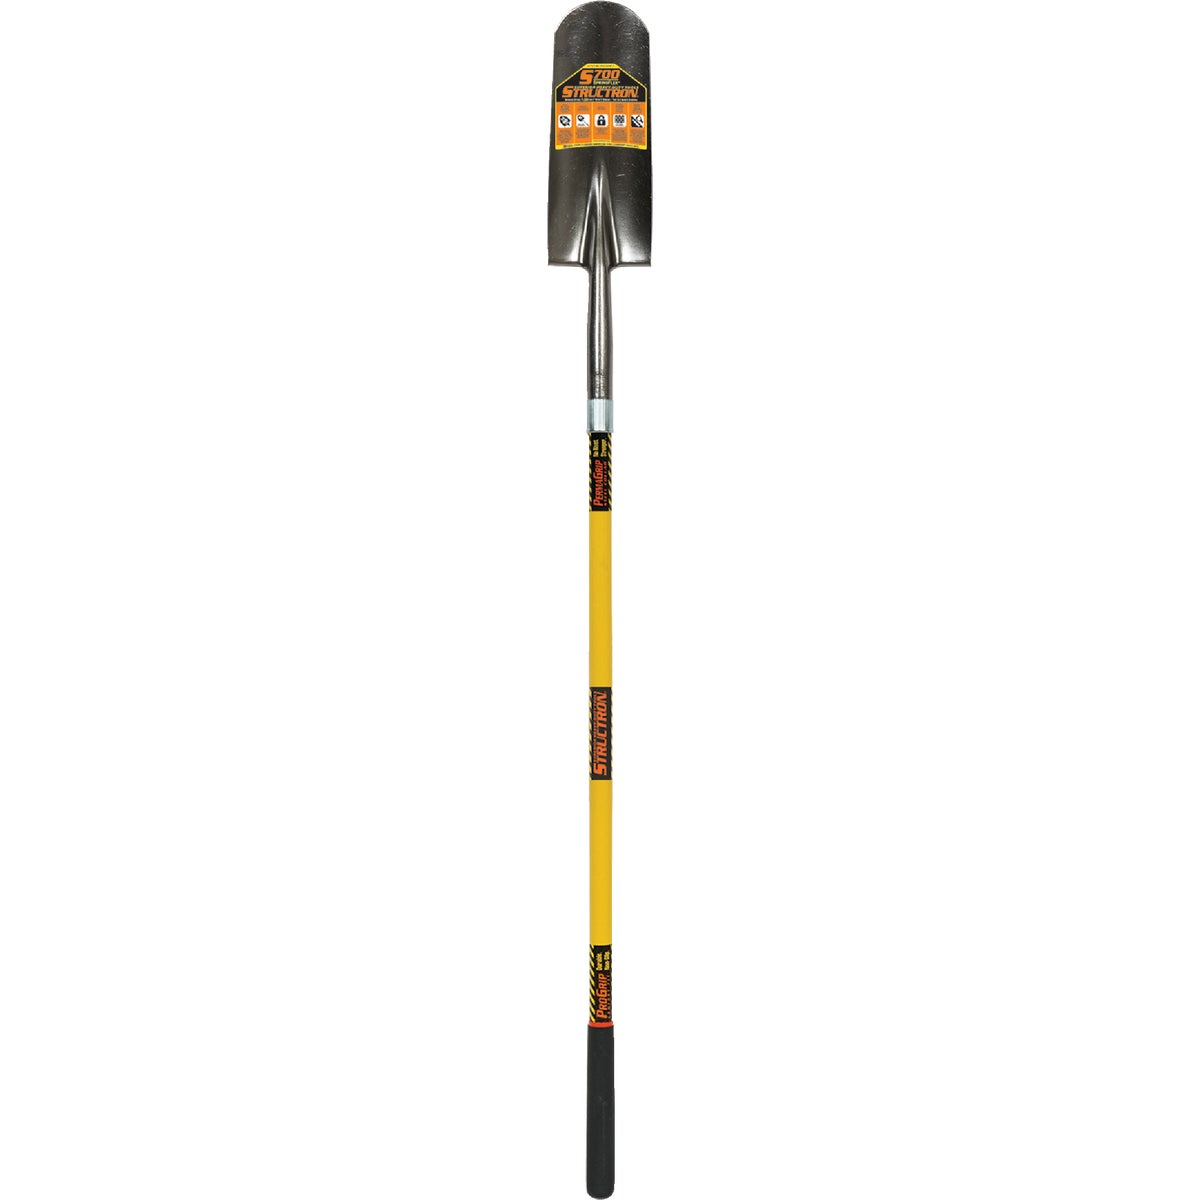 LONG HANDLE DRAIN SPADE - 49736 by Seymour Mfg Co